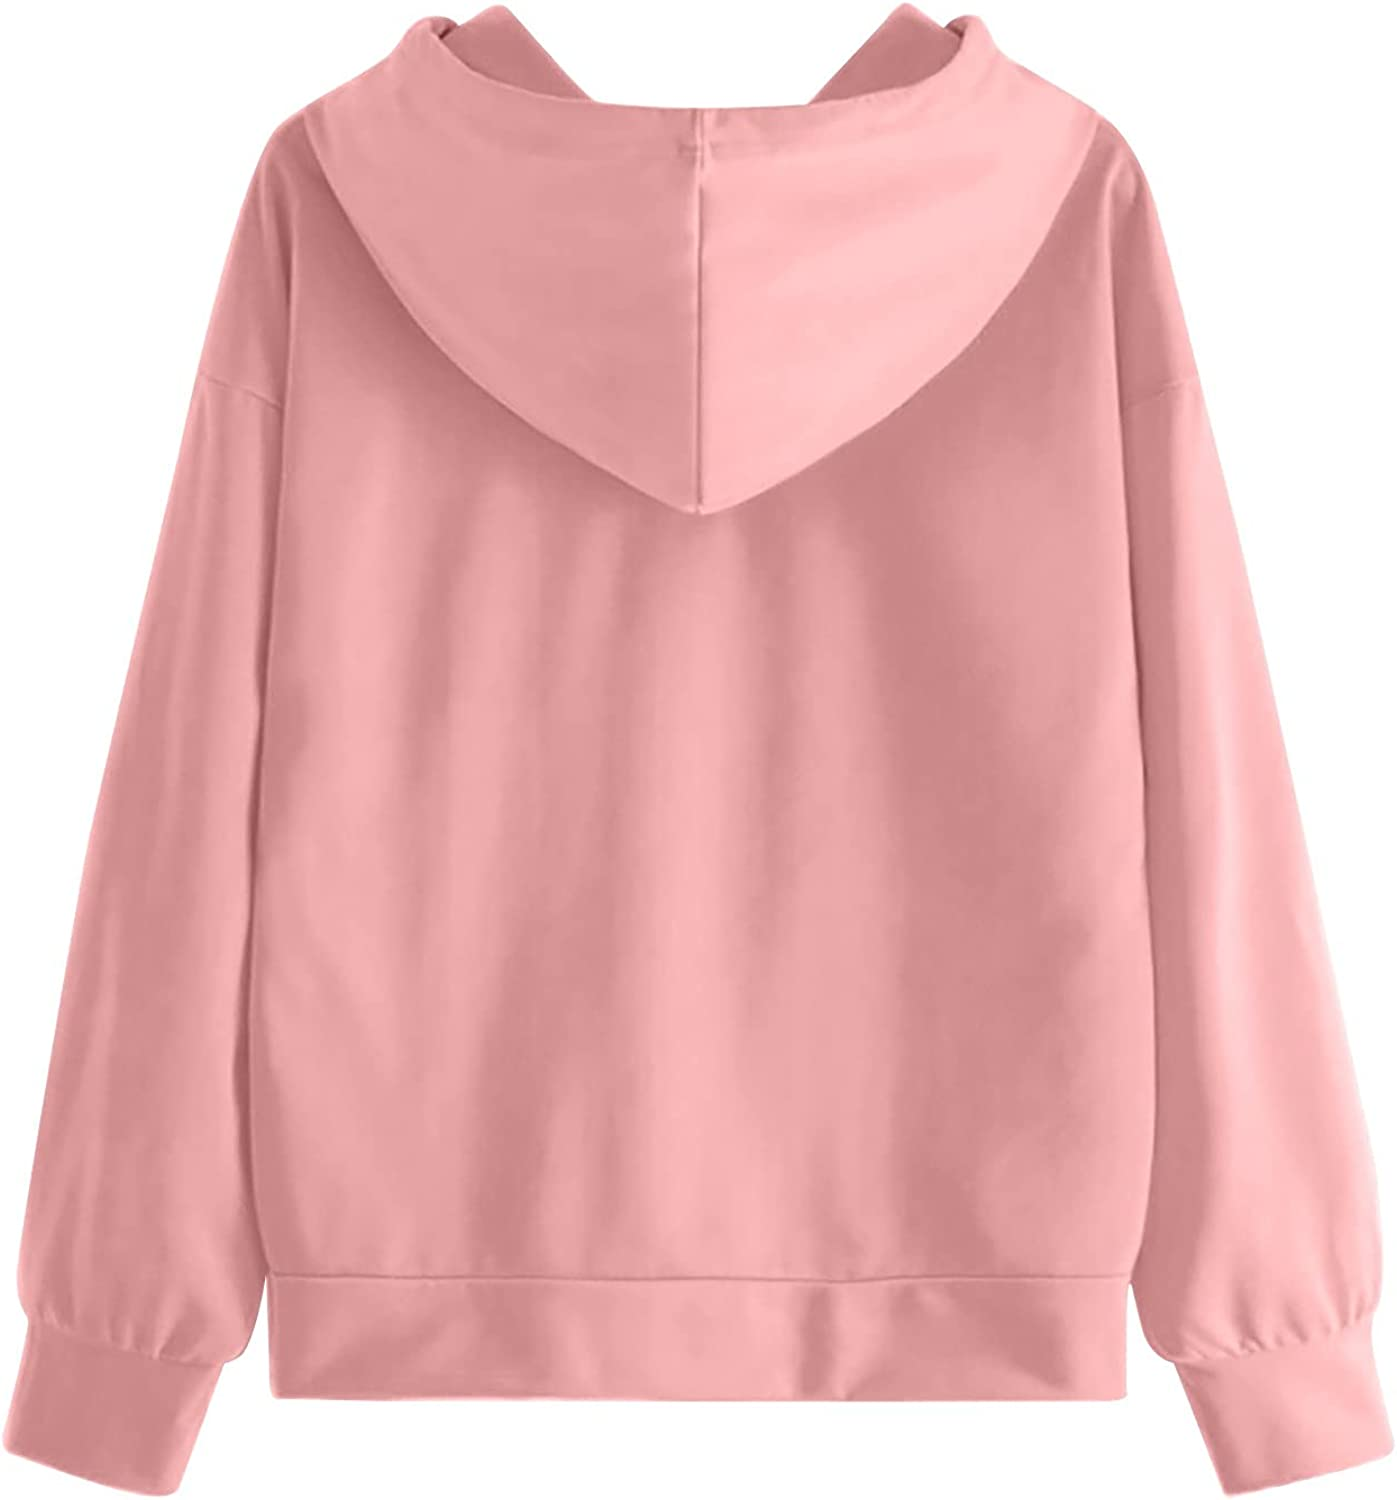 Womens Fall Winter Pullover Hoodies with Pockets Cotton Hooded Sweaters Shirts Coat Cardigan Shirt